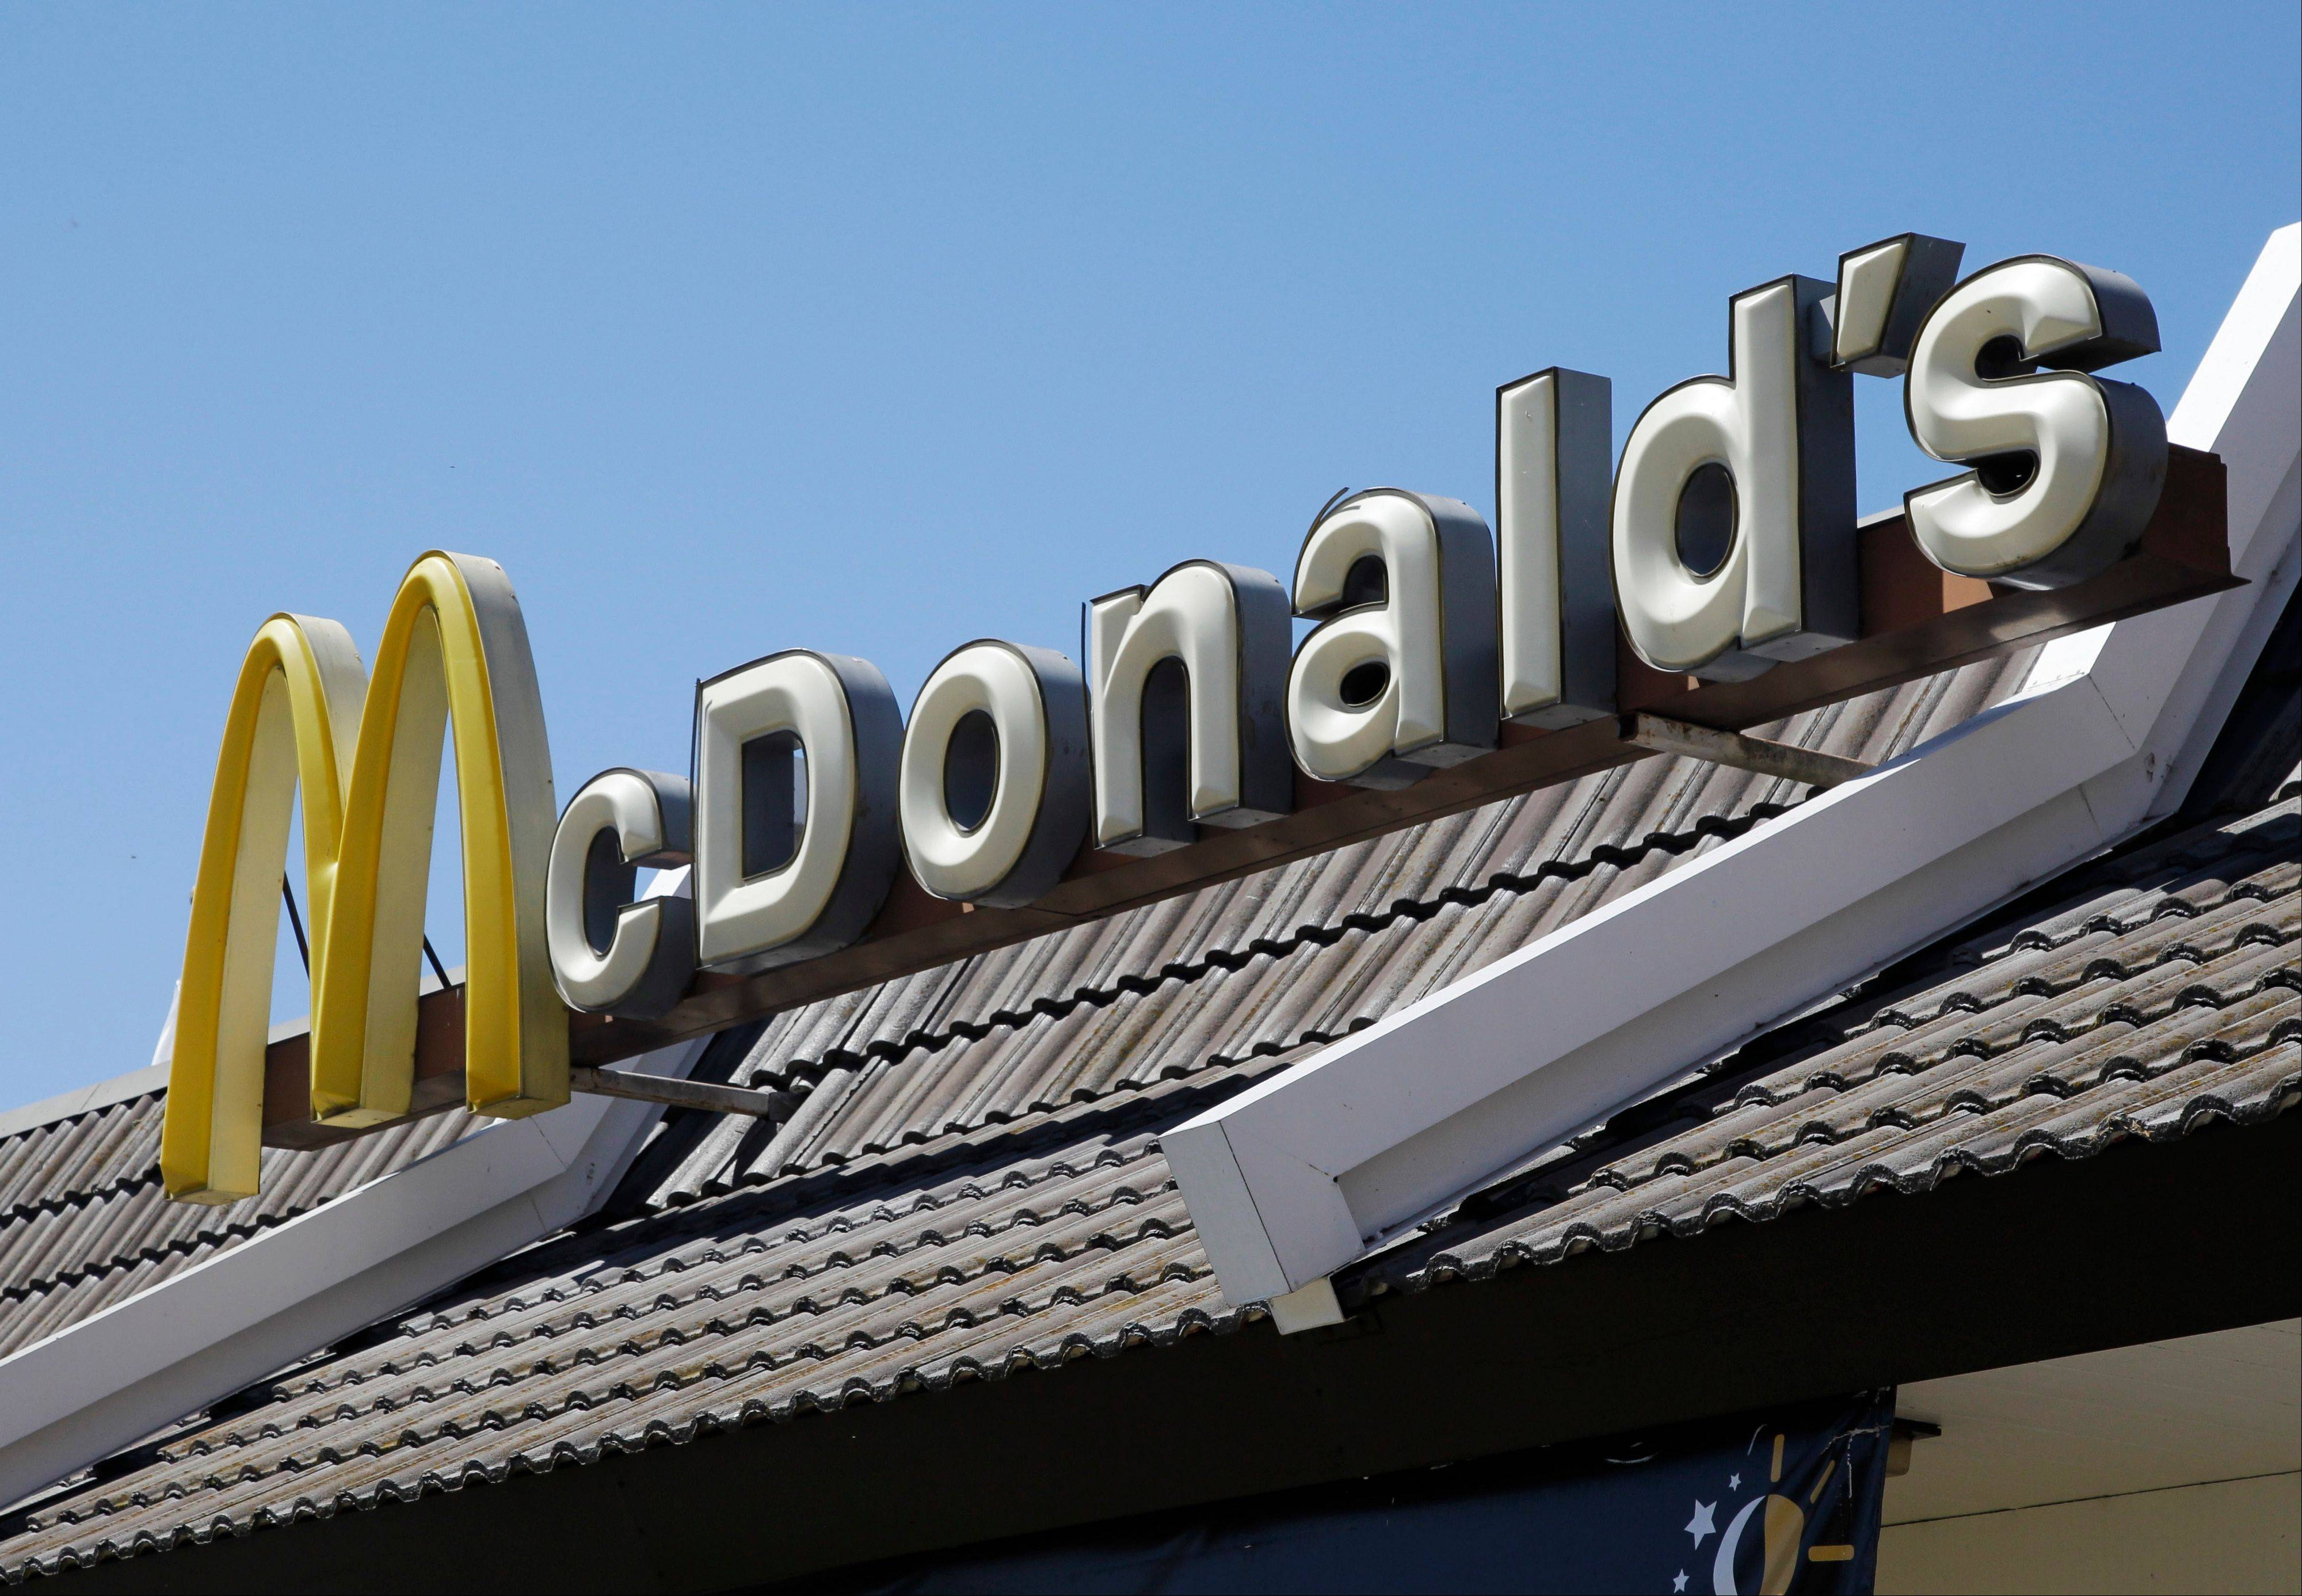 ASSOCIATED PRESS Oak Brook-based McDonald�s said Monday that a key sales figure rose 0.5 percent in November, even as the world�s biggest hamburger chain faced tough competition and basically flat traffic in the U.S.